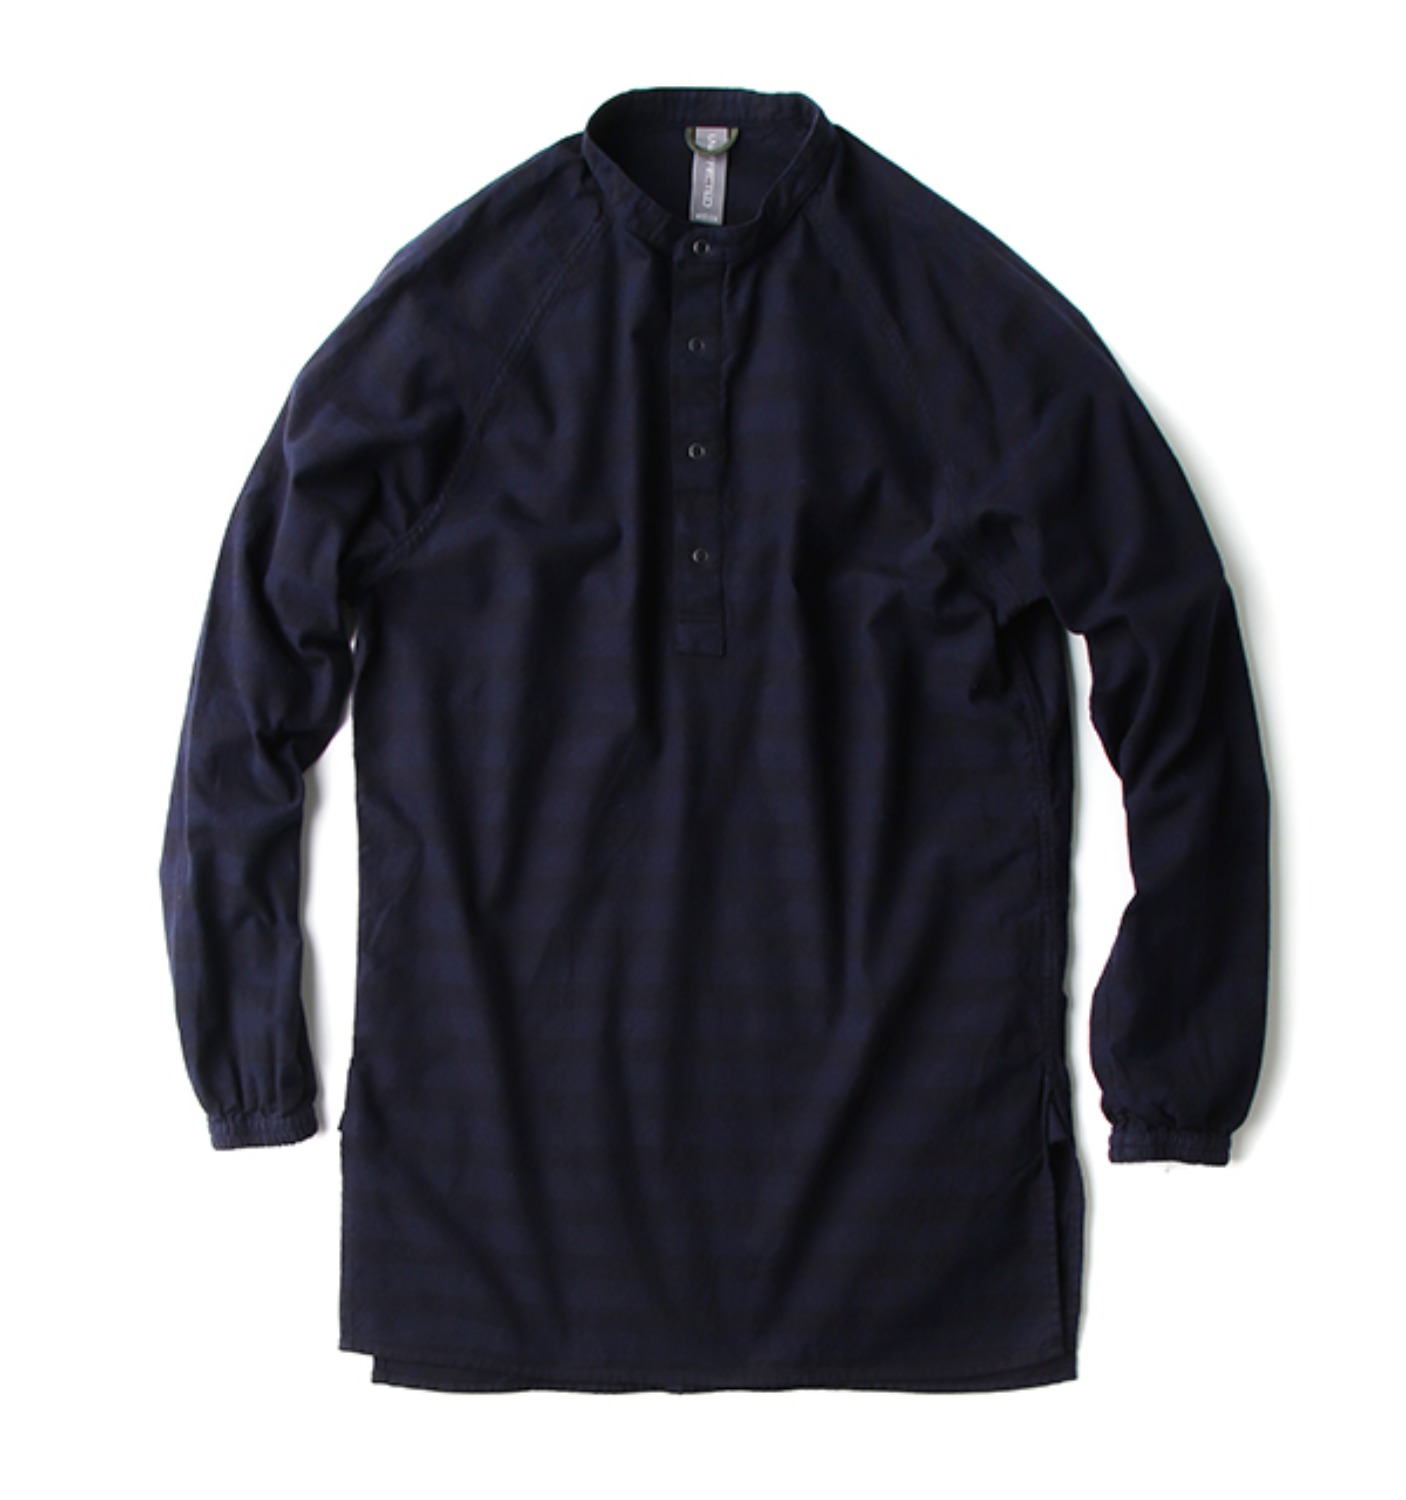 RAGLAN LONG SHIRT NAVY STRIPE(UN-AW17SH04)